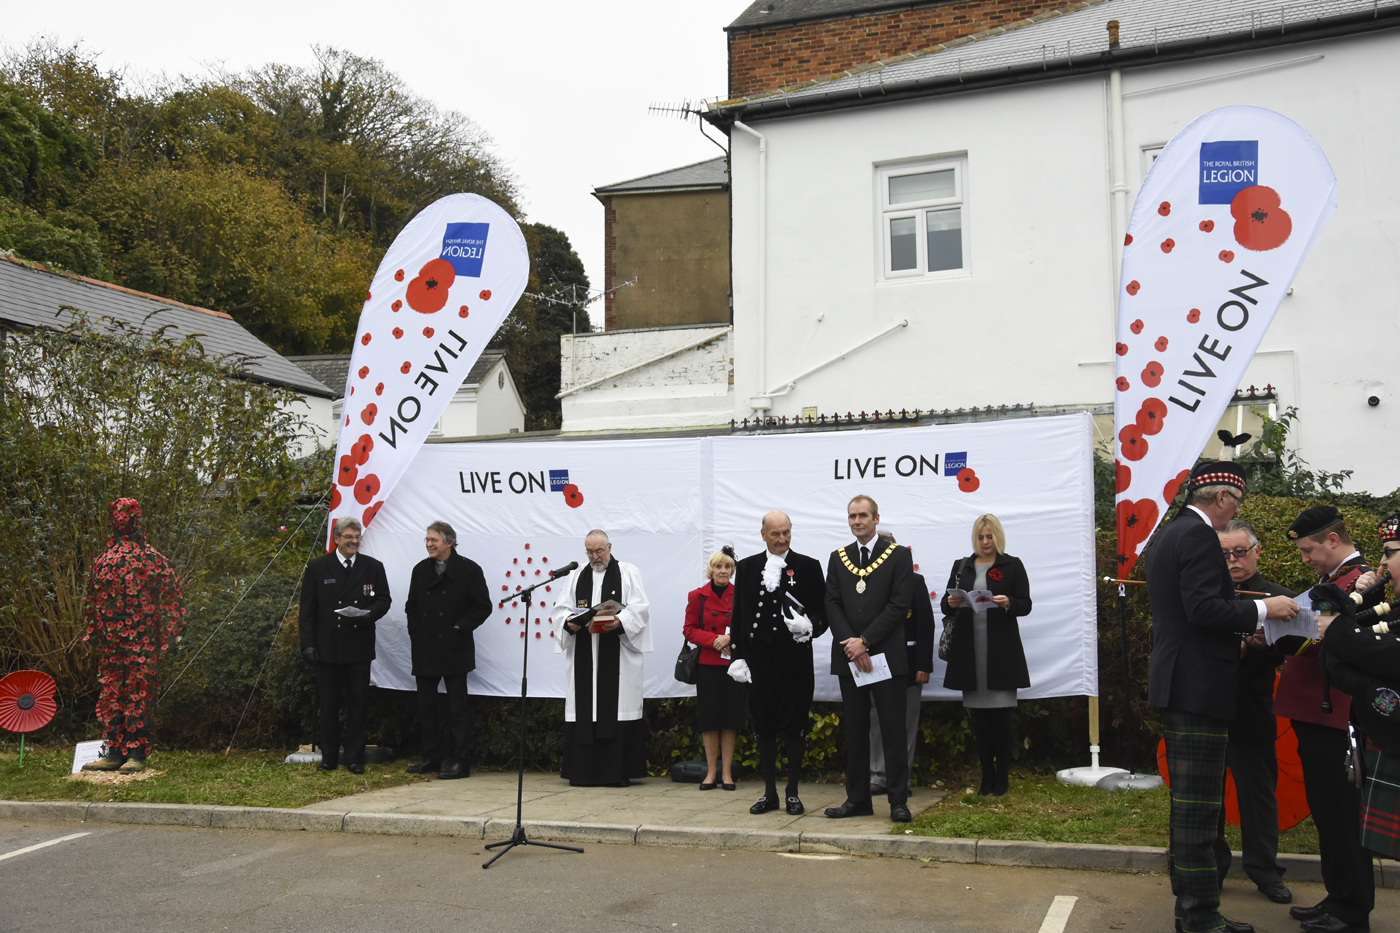 20161029_stp_3554-hss-launch-of-the-poppy-appeal-2016-in-ventnor